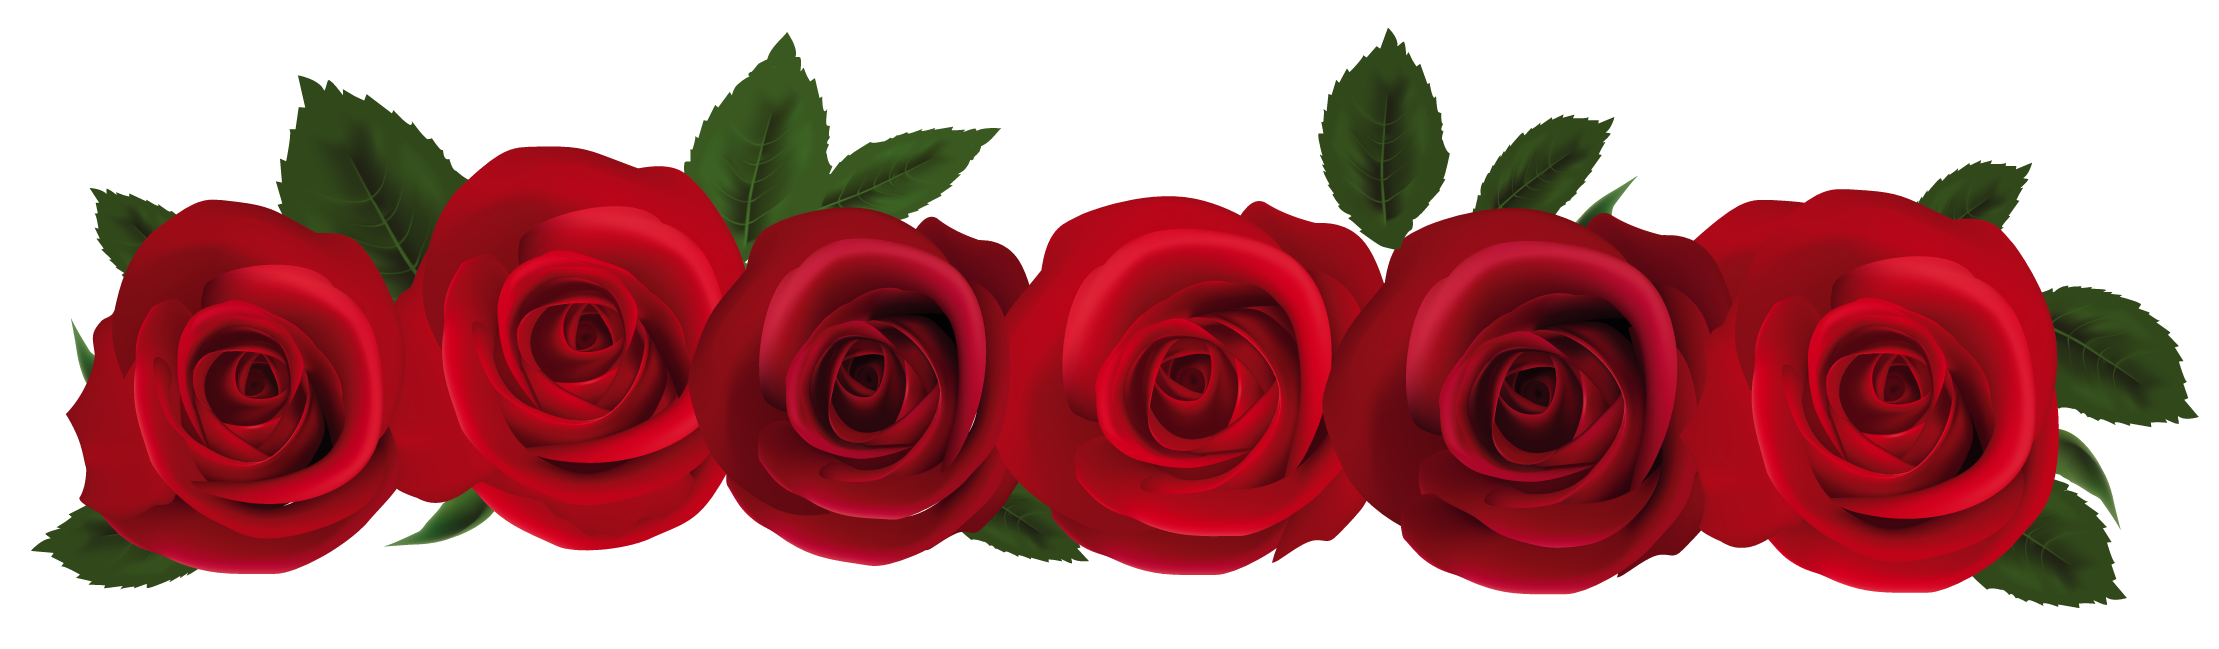 Rose border png. Clip art free clipart